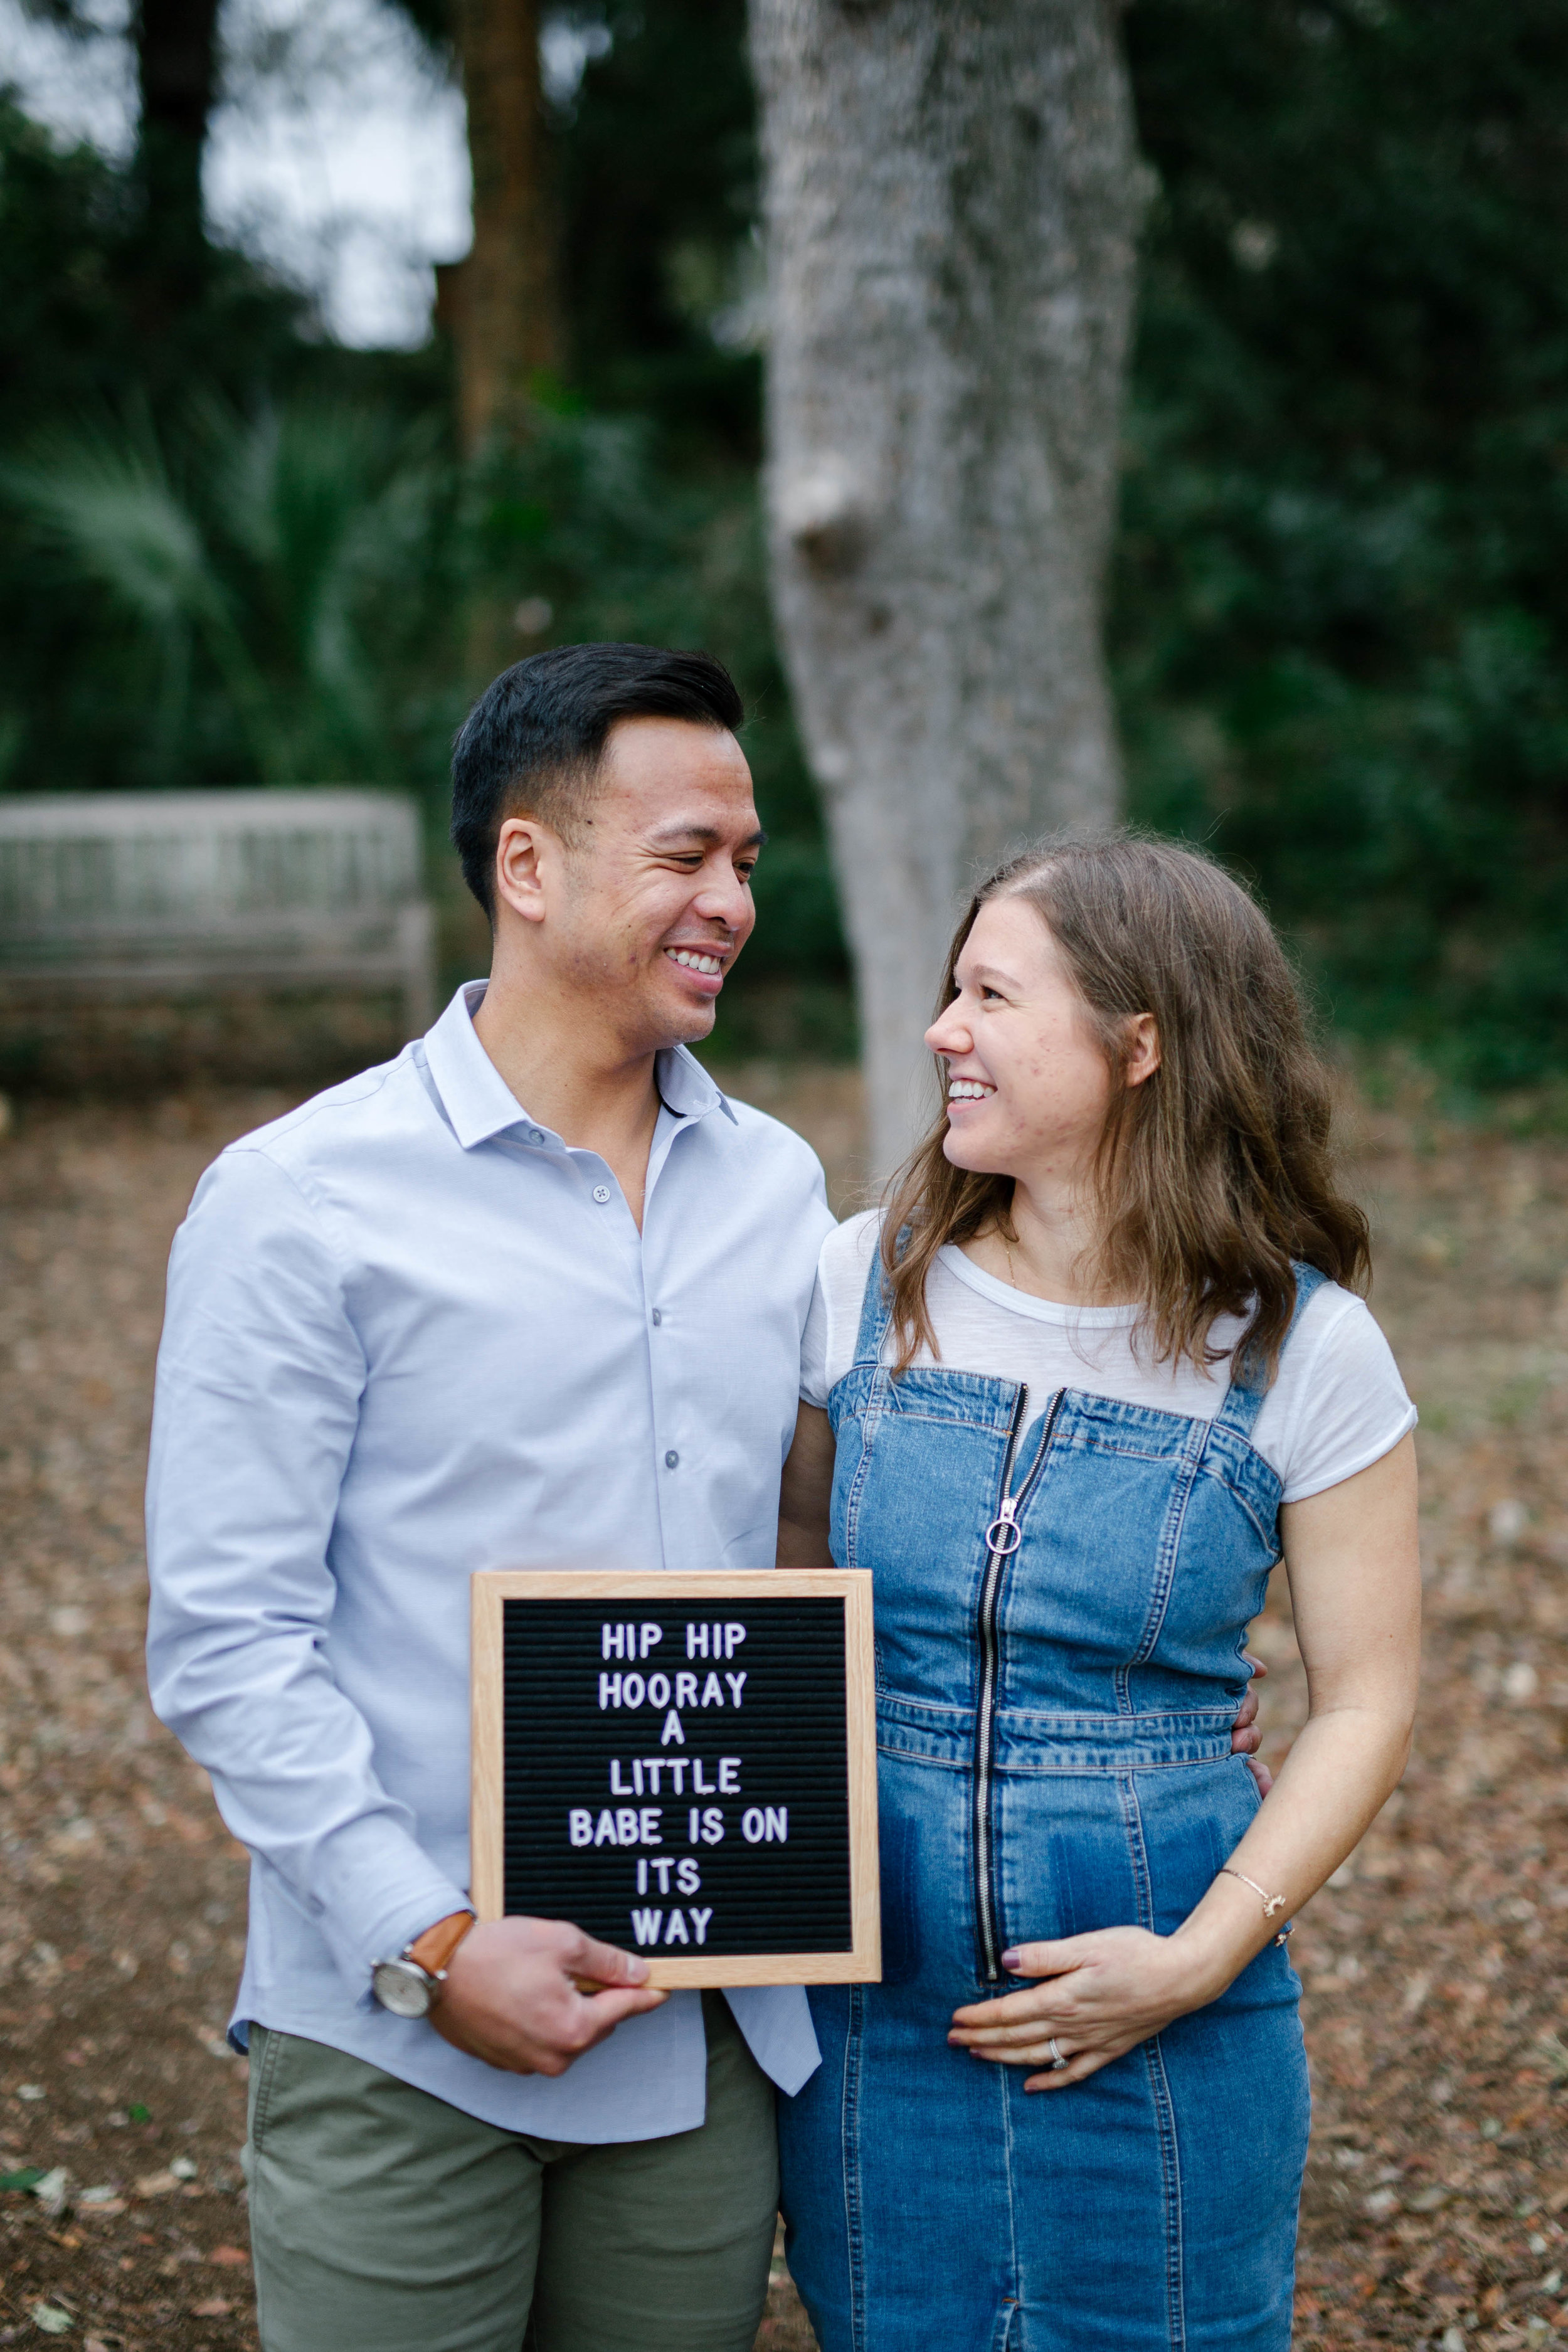 BABY ON THE WAY!